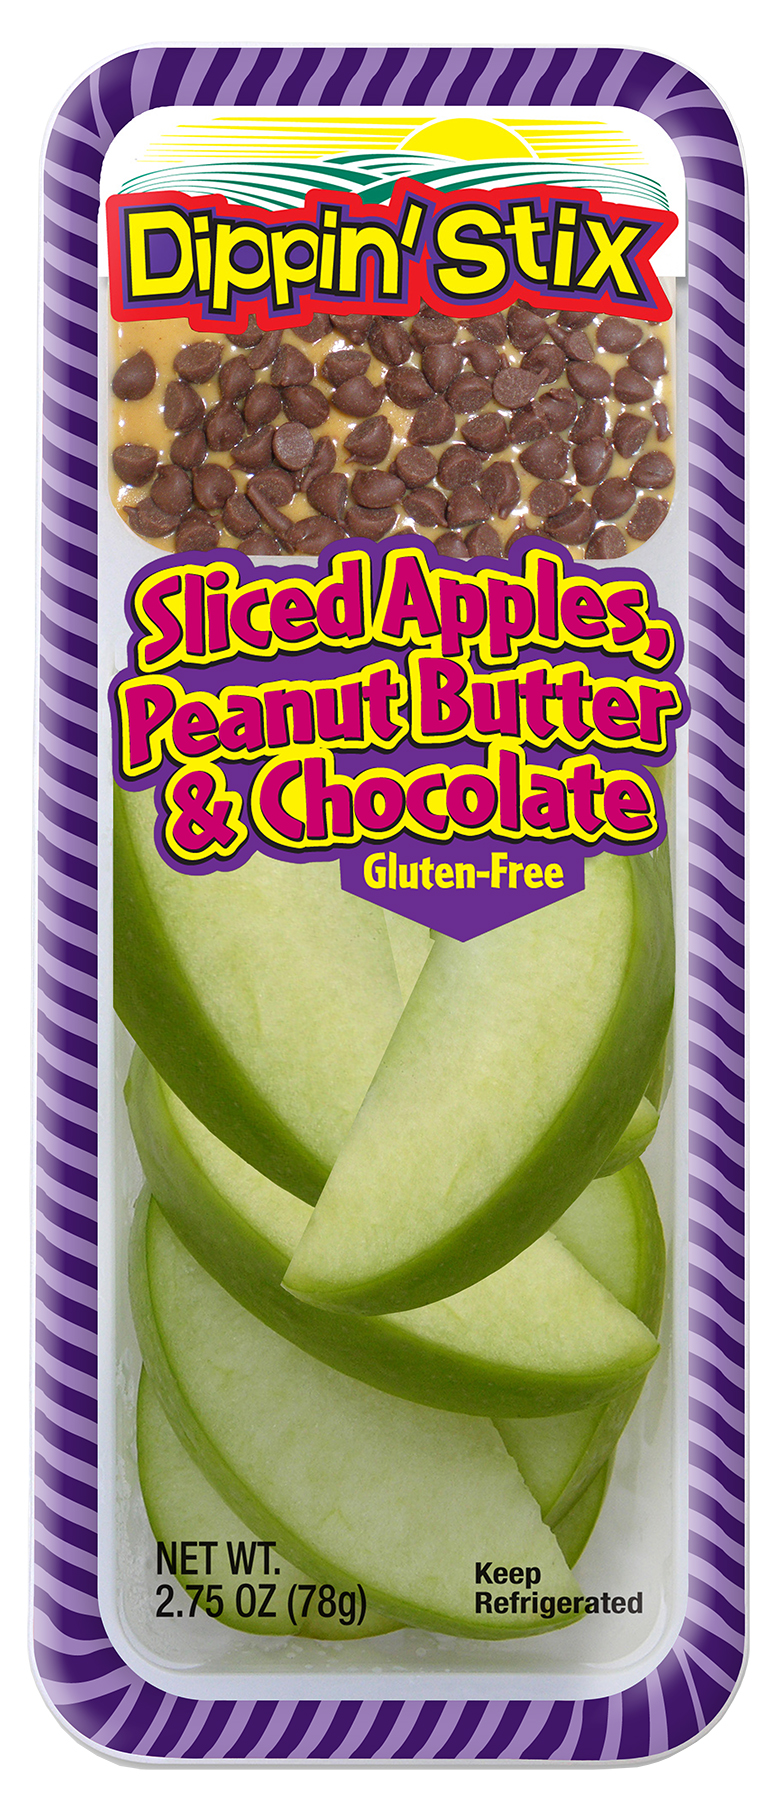 Apples_Peanut_Butter_Chocolate_2x6